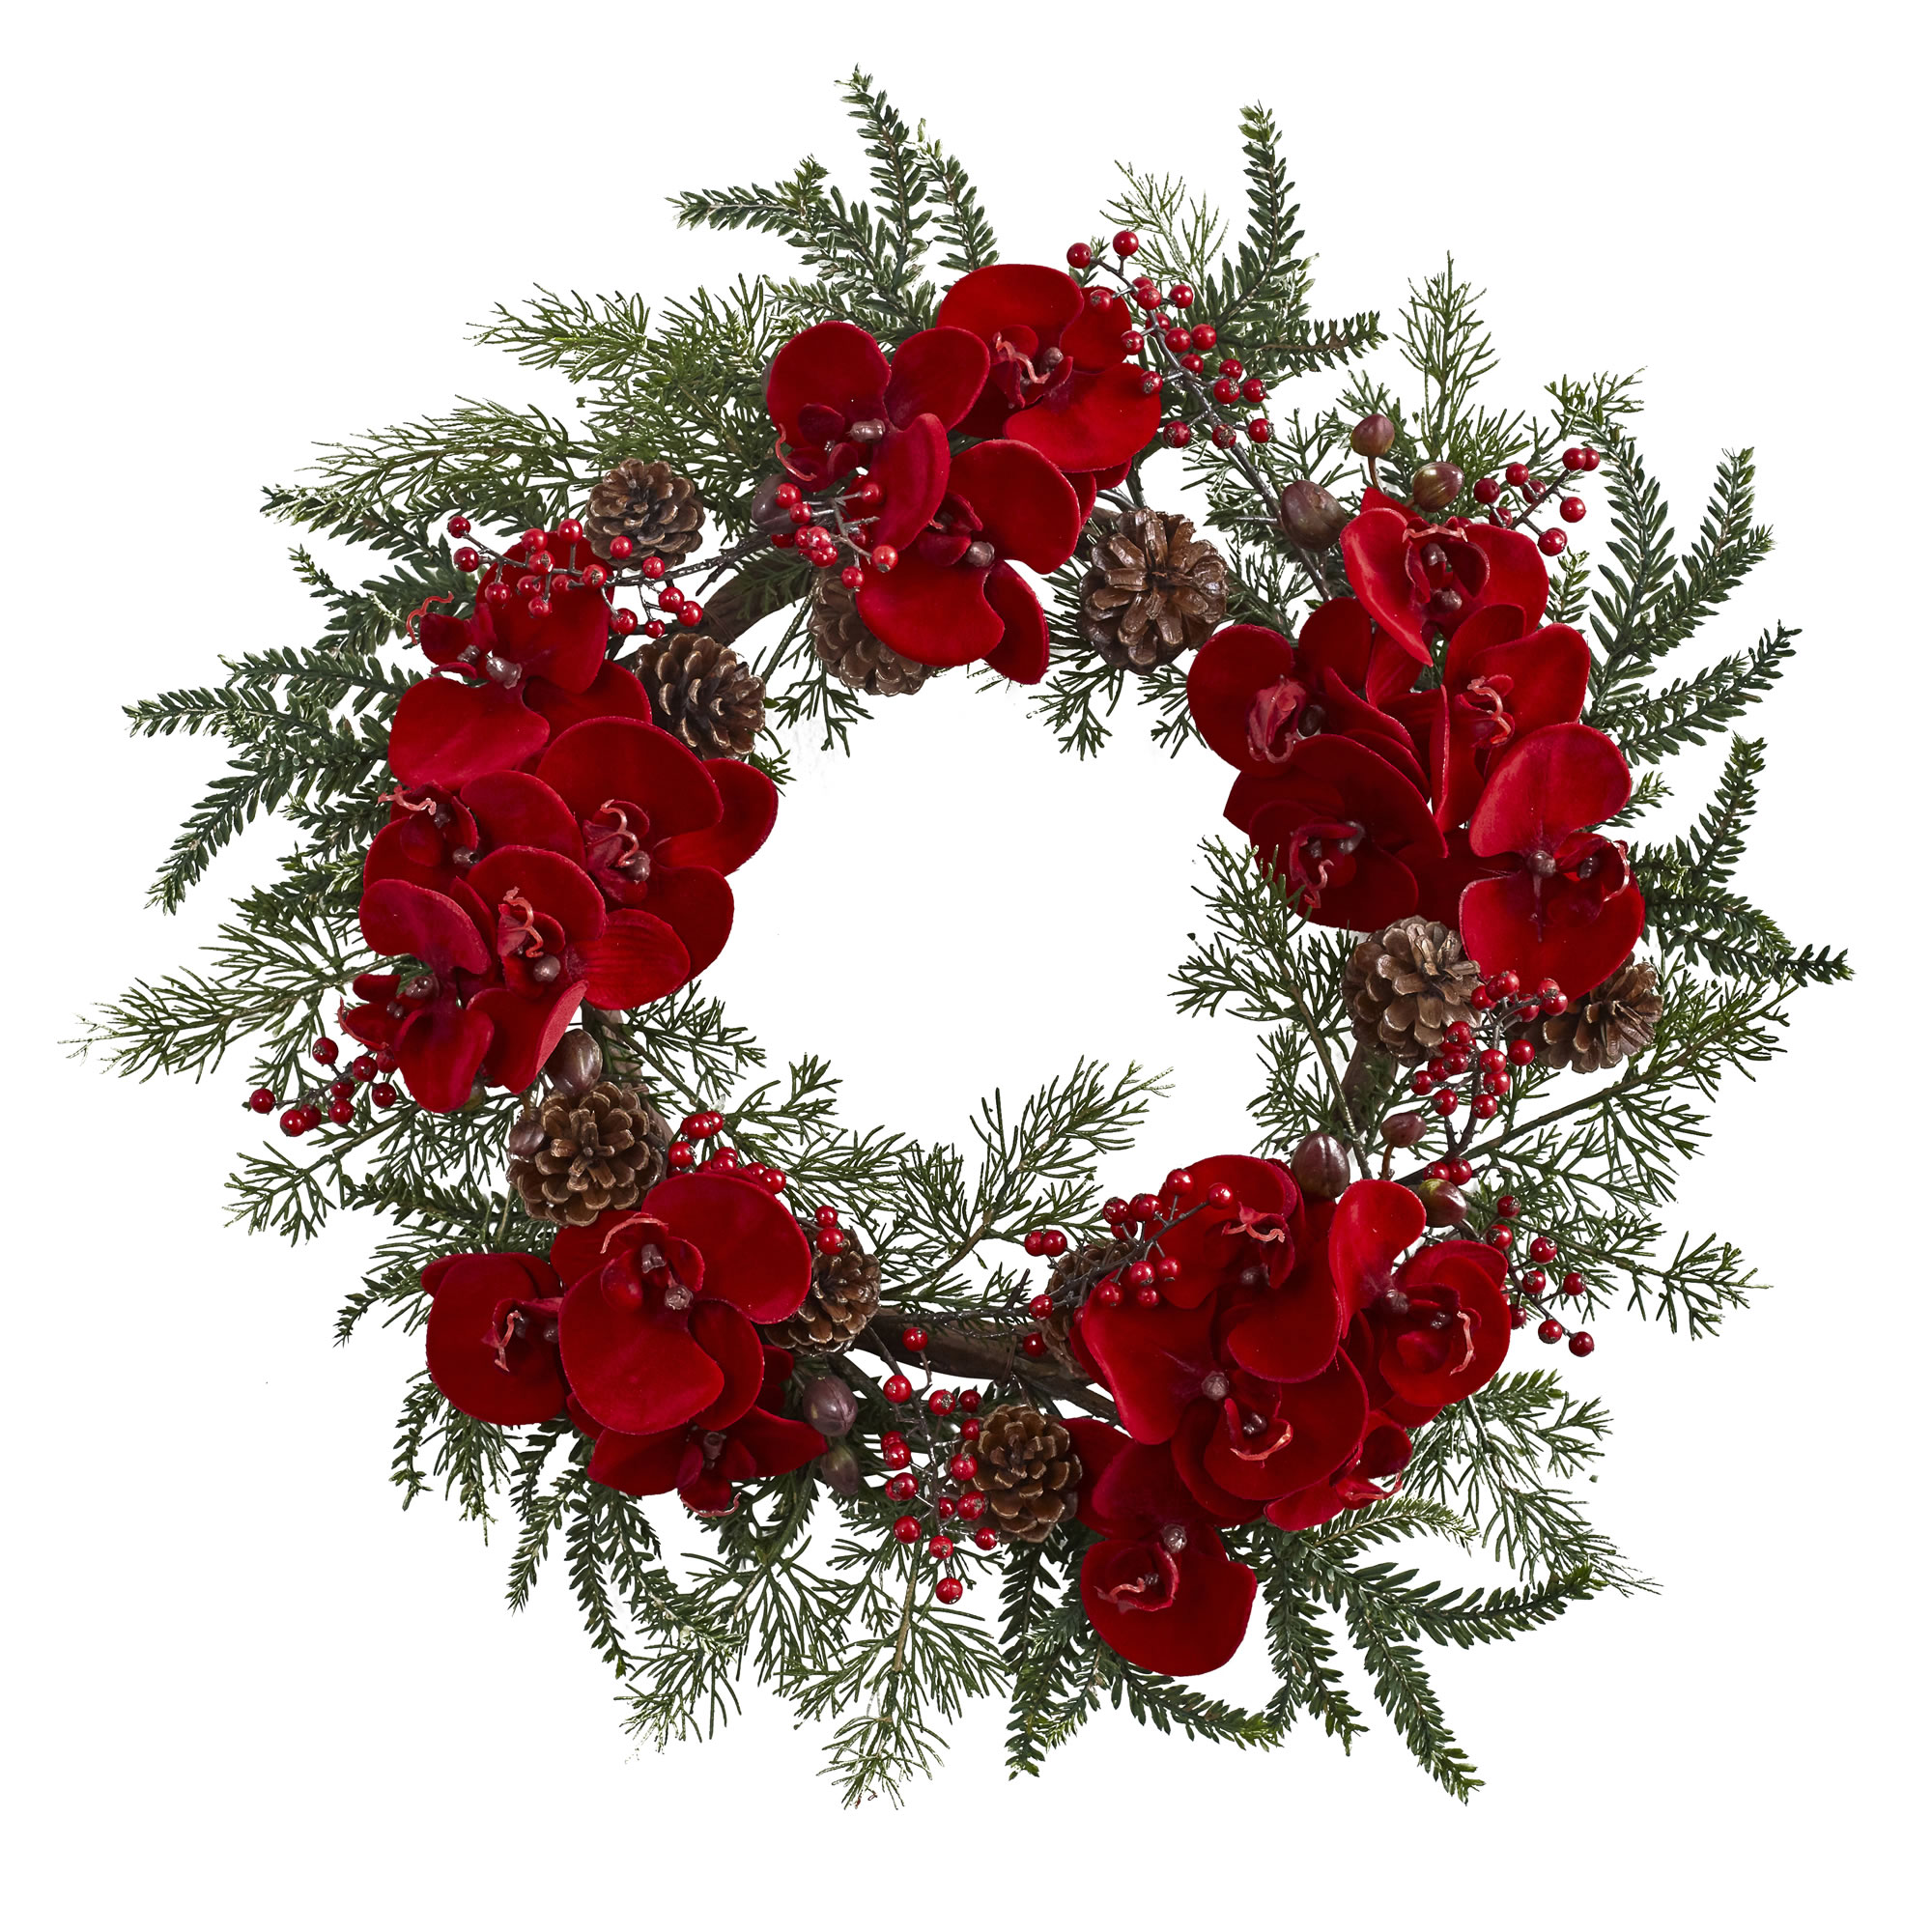 Orchid, Berry & Pine Holiday Wreath